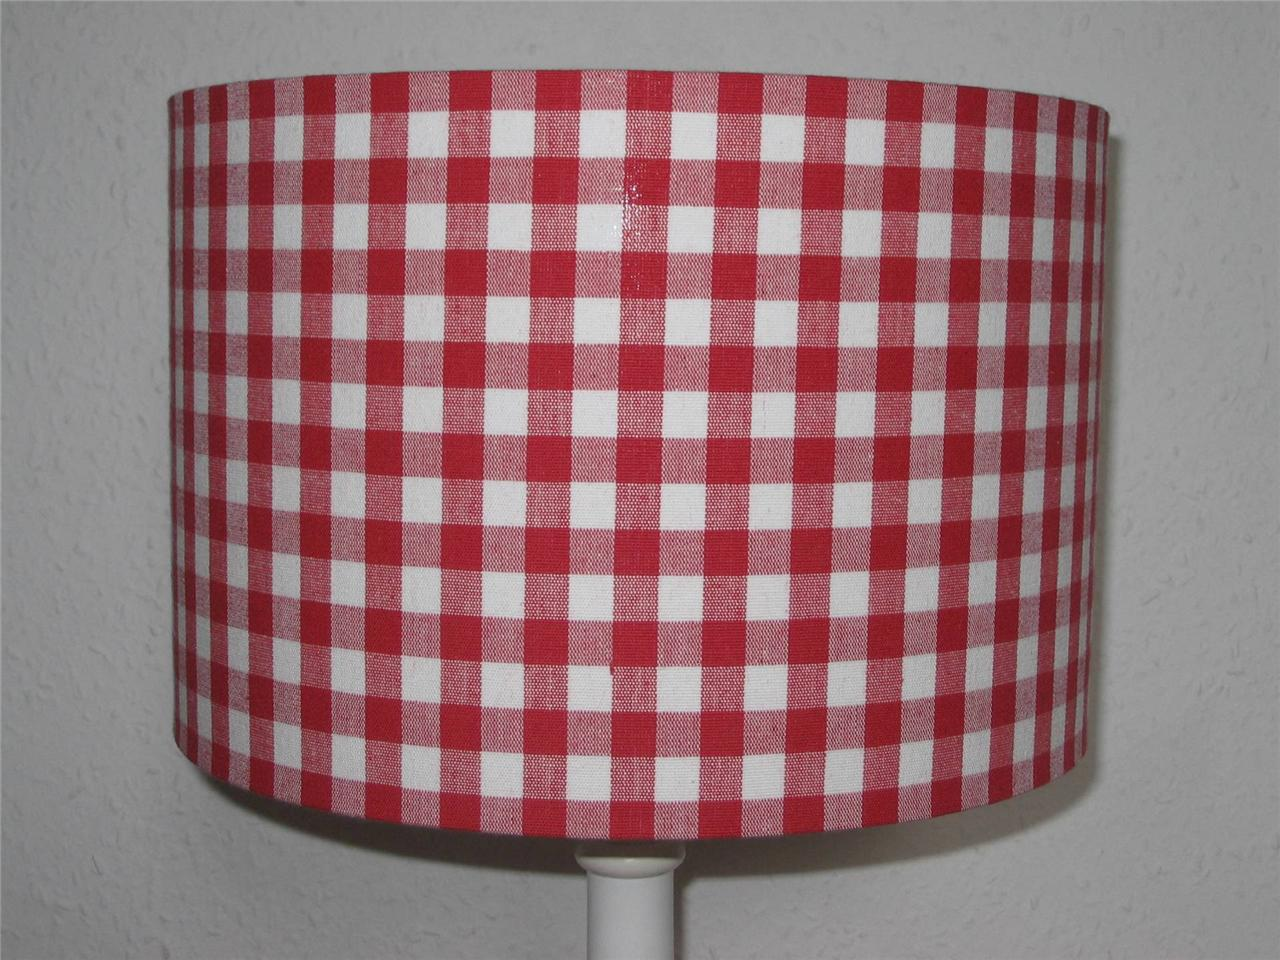 Red Gingham Lamp Shade: Lamp Shades For Country Home Decor By Raghu The Weed Patch,Lighting